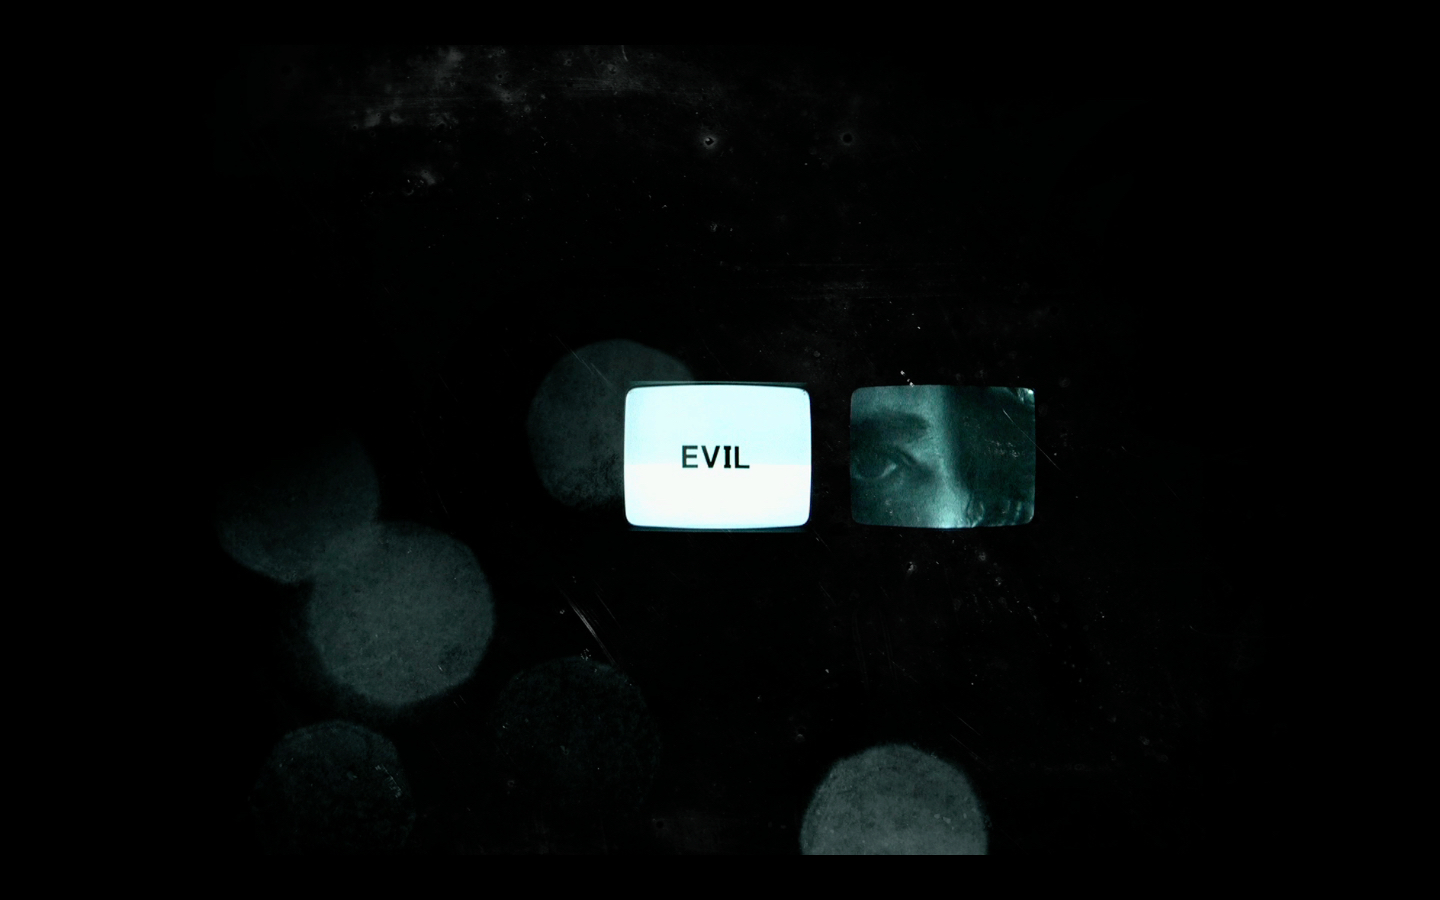 Evil, I<br><br>Investigation Discovery<br><i>2012-2013 — 2 Seasons, 18 episodes<br>Produced in association with X-Con</i>